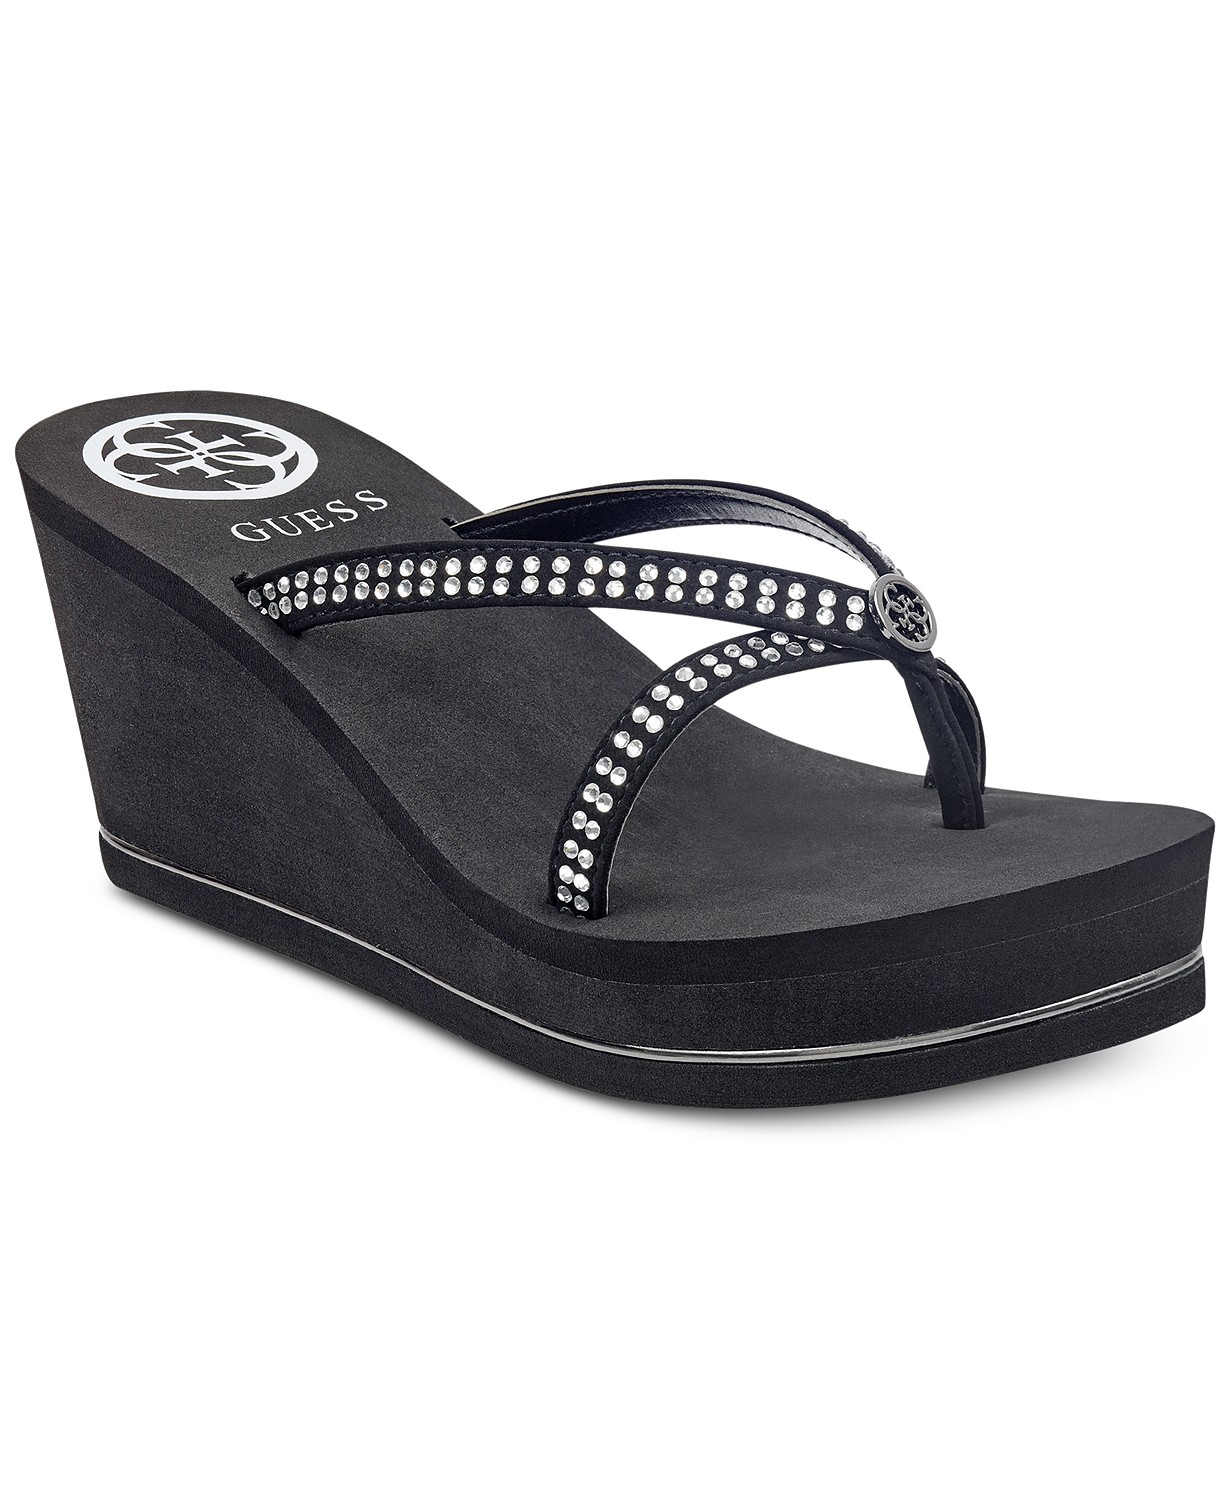 GUESS Women's Selya Platform Wedge Sandals